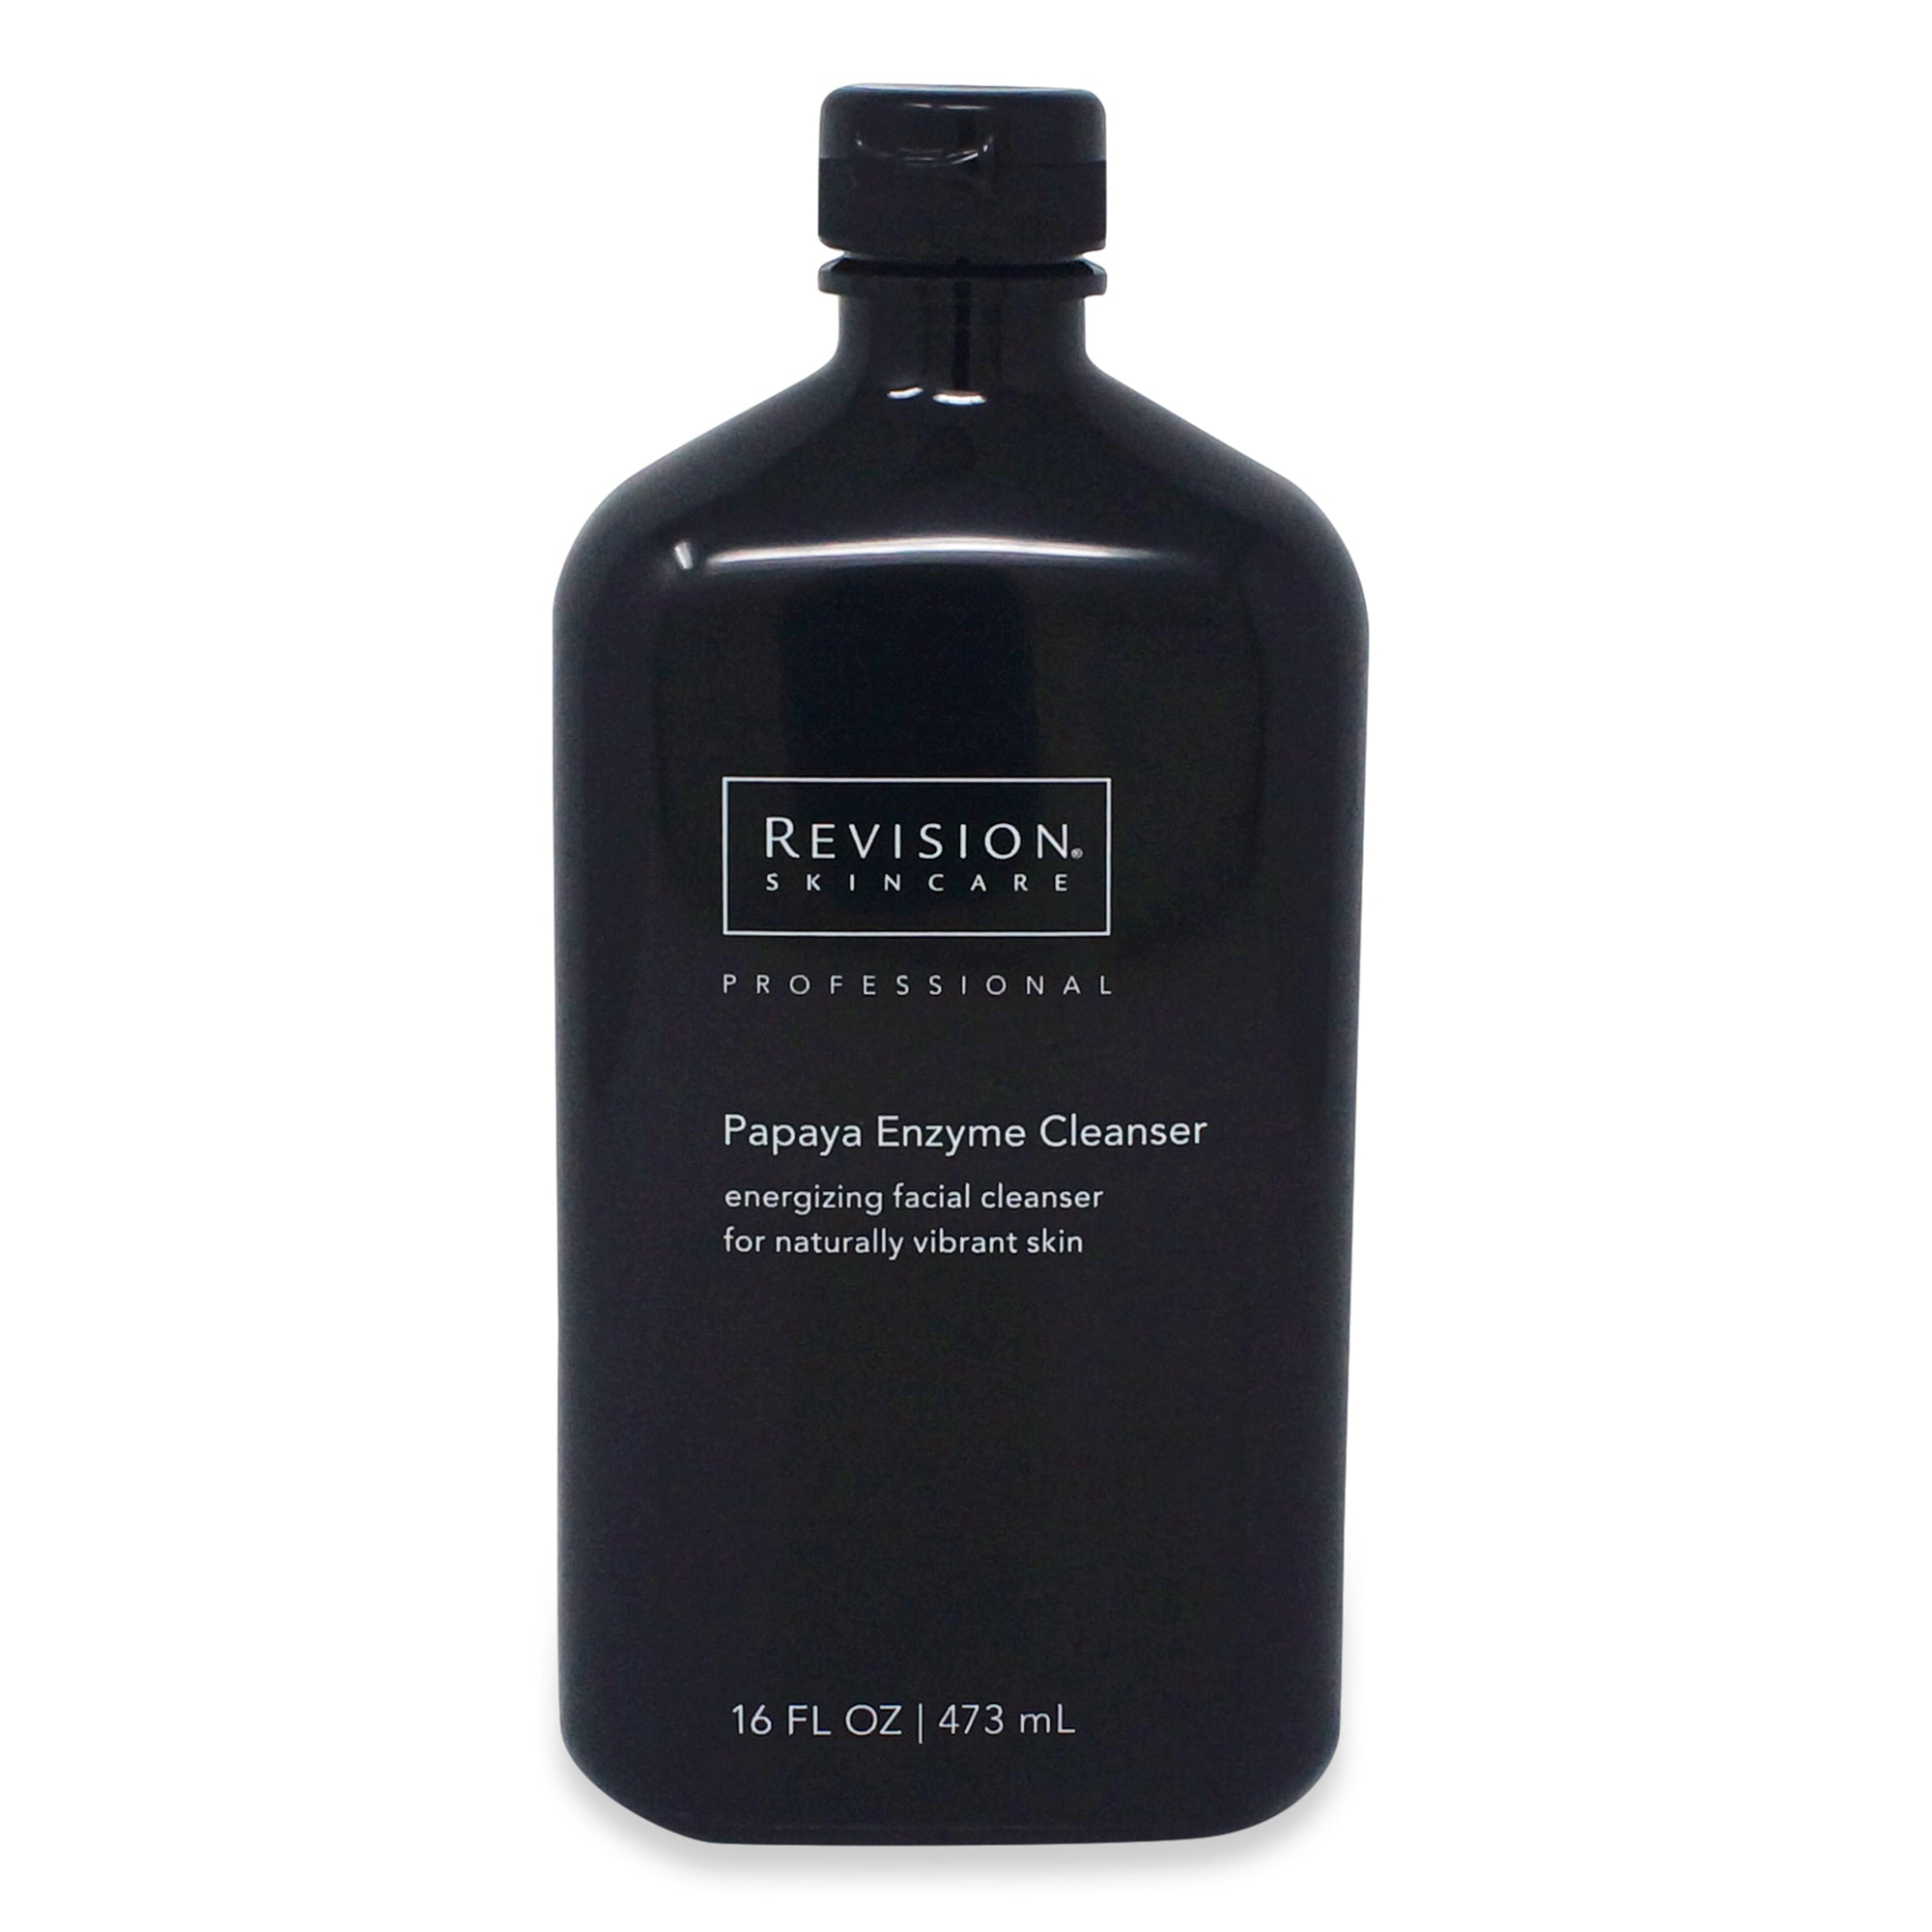 REVISION ~ PAPAYA ENZYME CLEANSER ~ 16 FL OZ BOTTLE